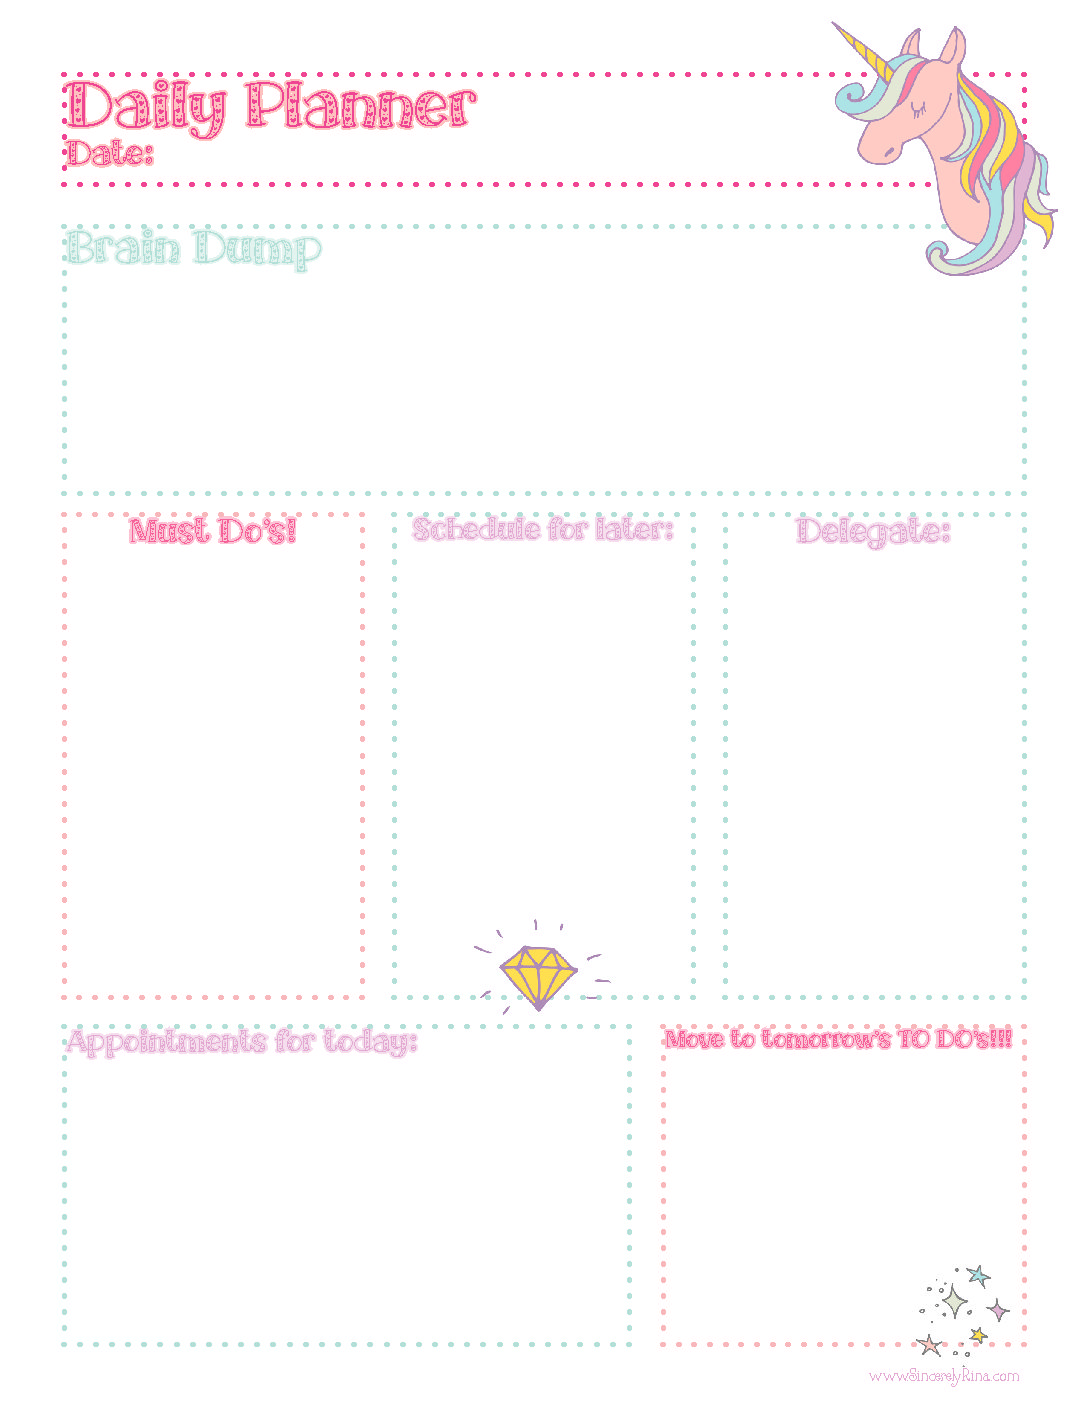 Unicorn Daily Planner Sheet Free Printable Sincerely Rina